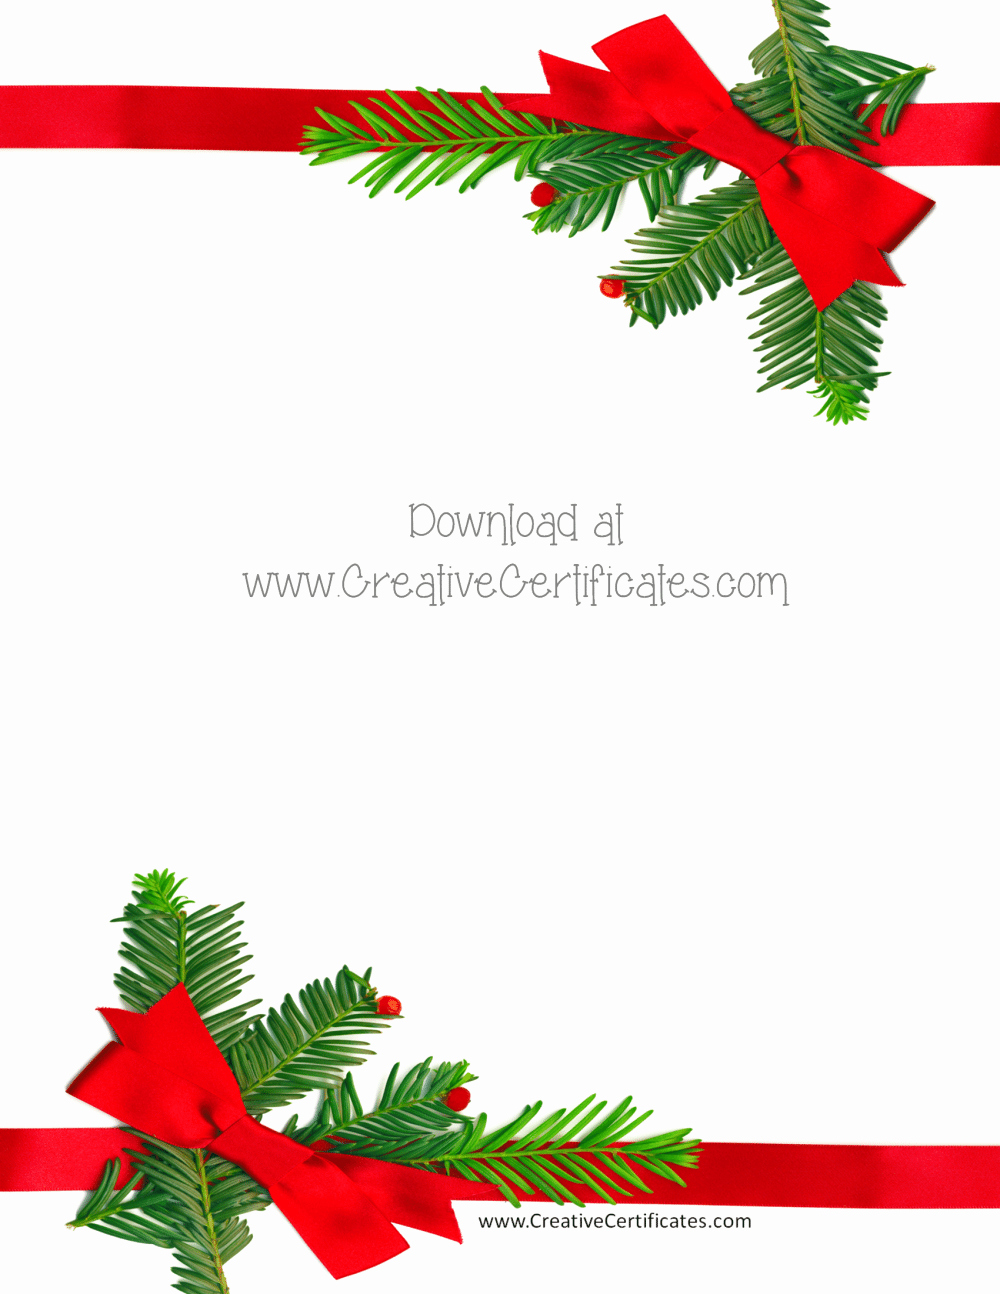 Free Christmas Border Templates Customize Line or